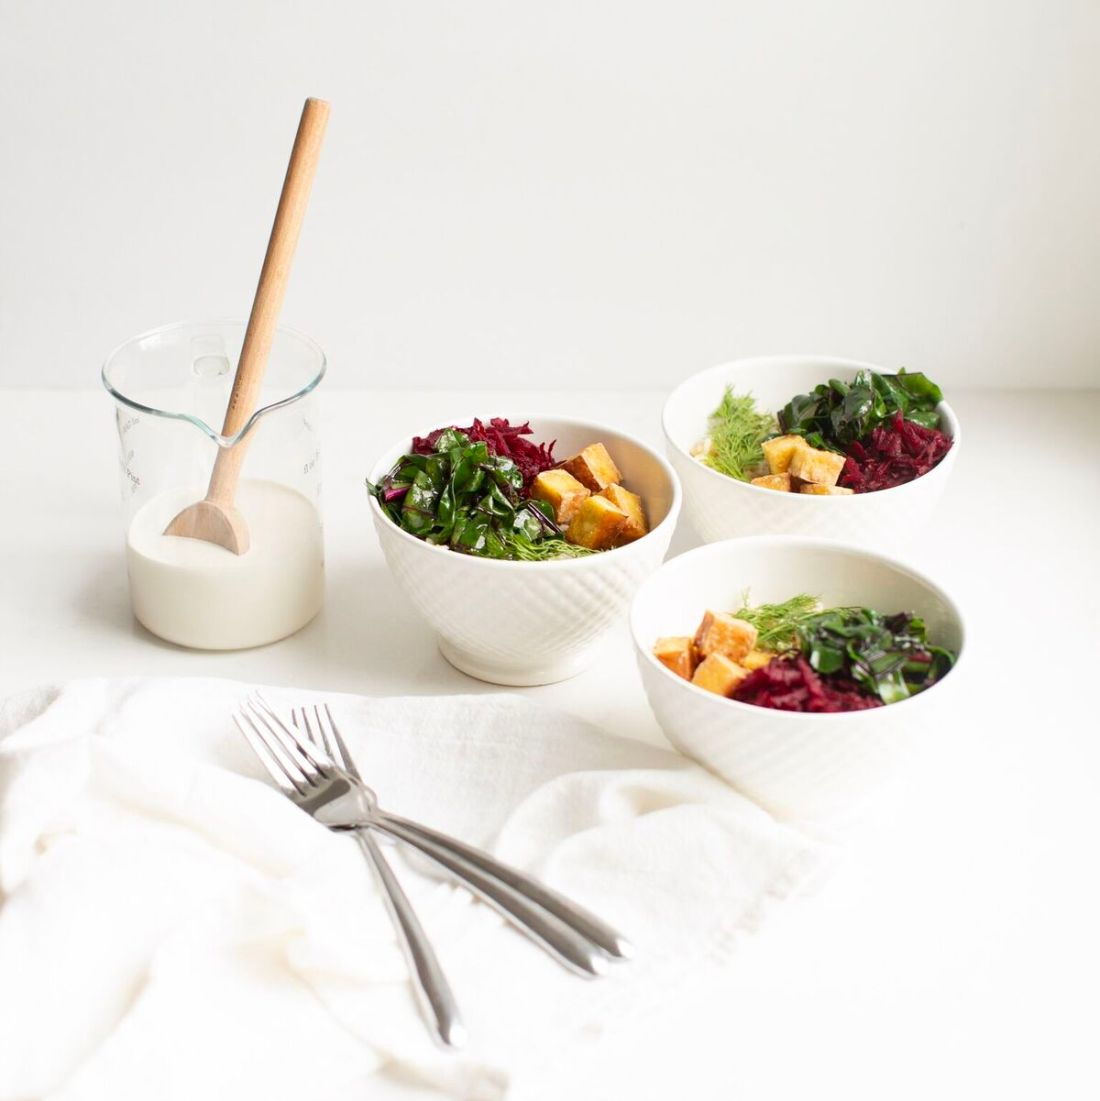 Baba Bowl: a healthy spin on Ukrainian cooking that harnesses all the flavours of Ukrainian cooking in a healthy vegan and gluten free beet and tofu rice bowl.